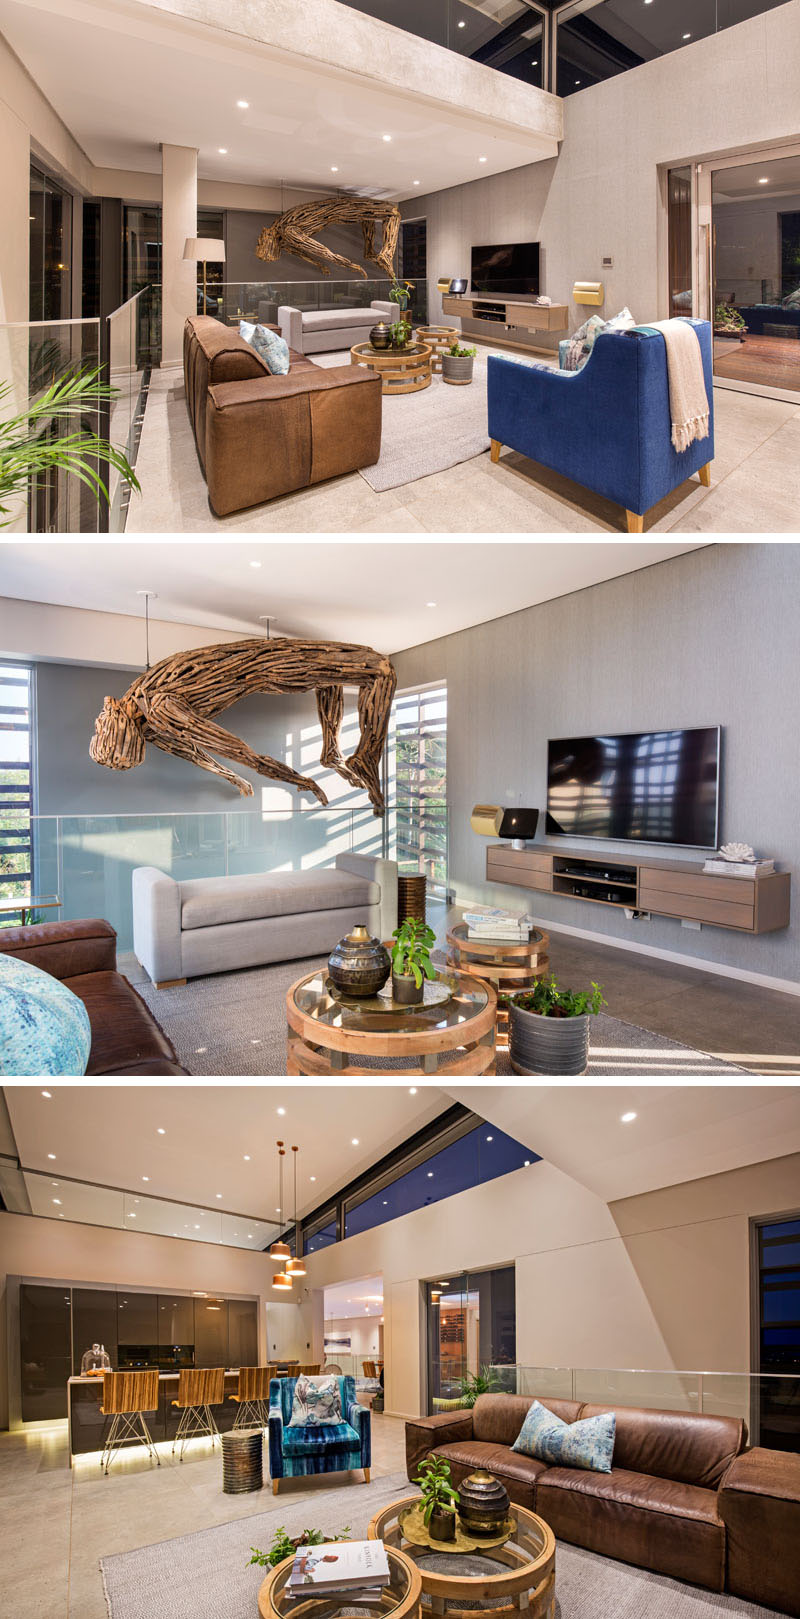 Stepping inside to the top floor of this modern home, the focal point of the living room is a large, wood art installation of a man, designed by the homeowner.